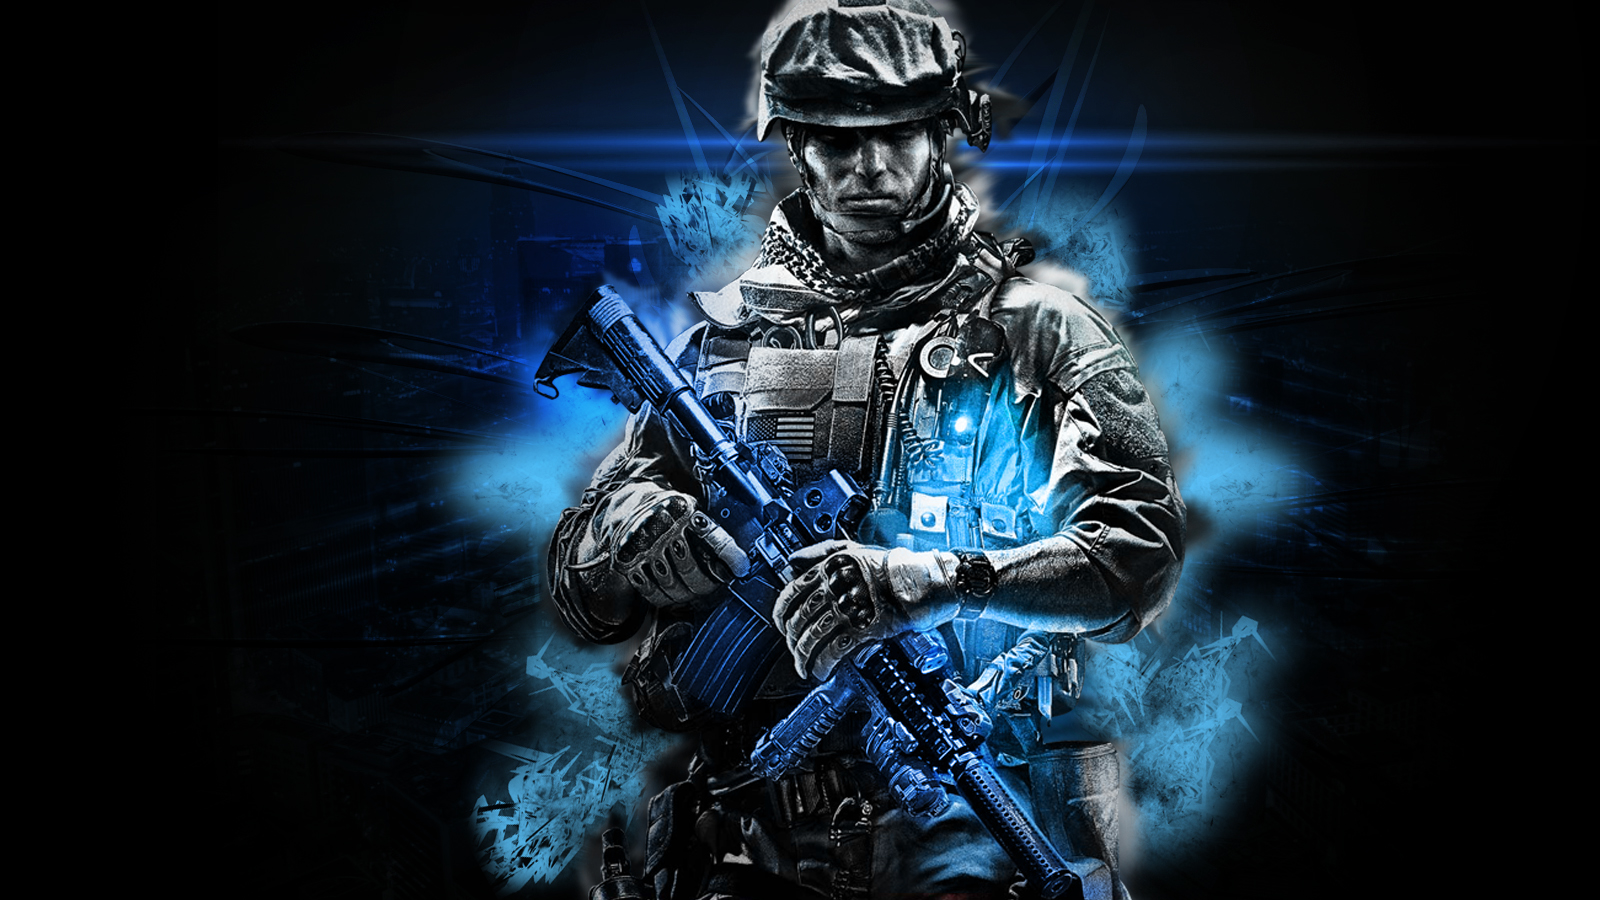 battlefield 3 pc wallpapers - photo #32